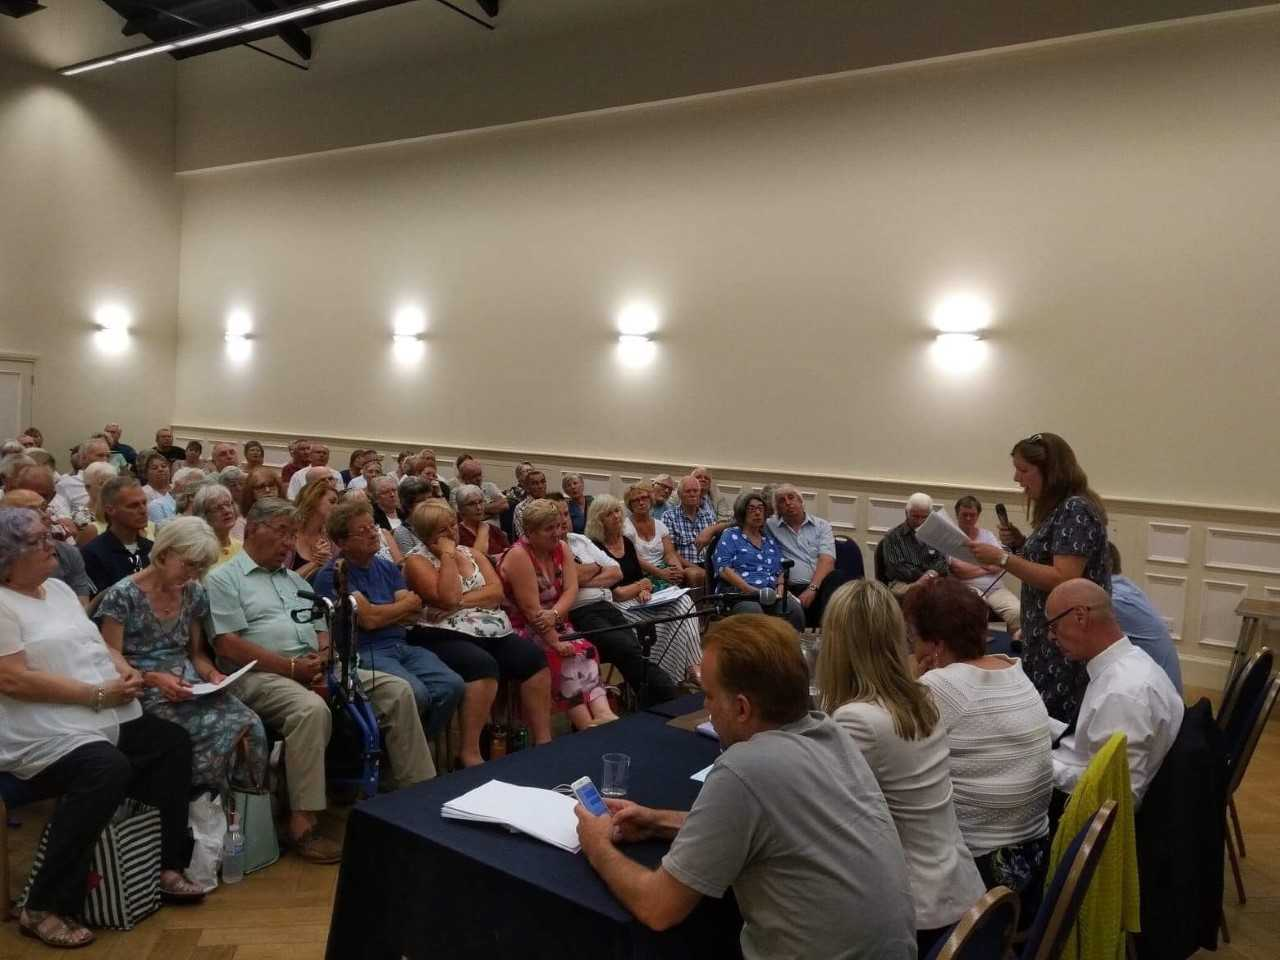 District councillor Rosa Bolger, standing, speaks at last week's Cogges Surgery meeting. She is part of a cross-party group to support patients Picture: Rosa Bolger